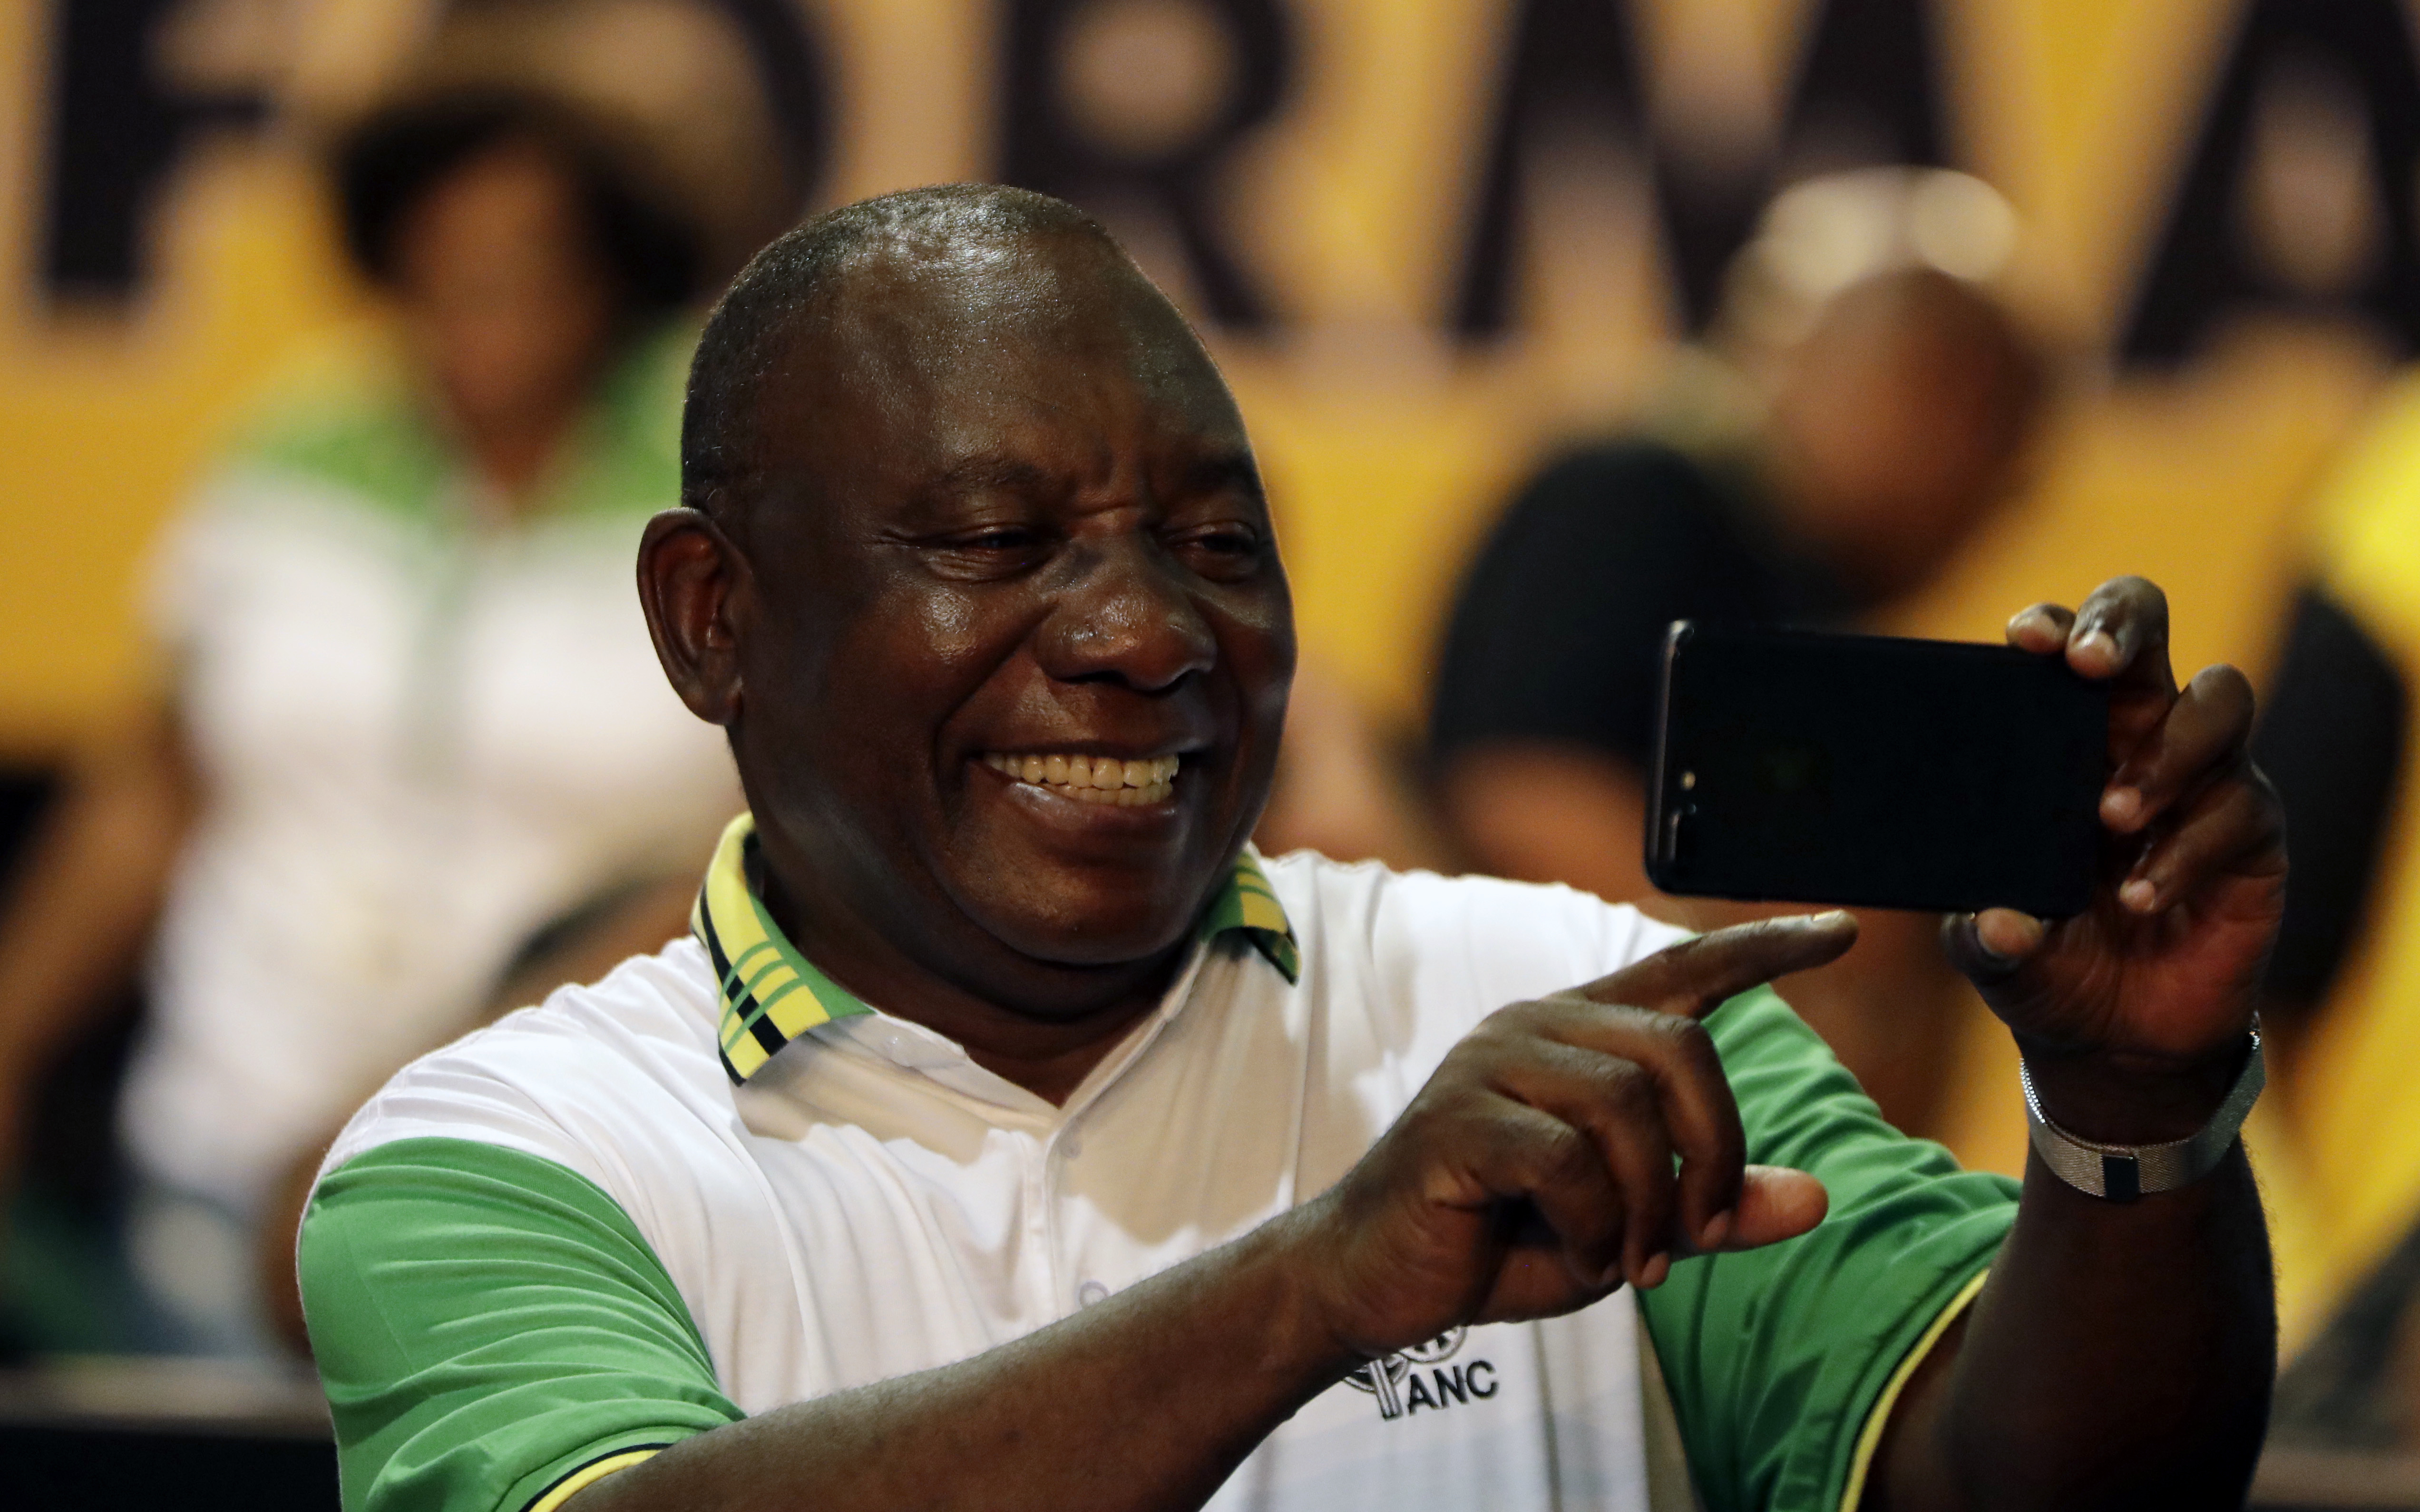 The newly elected African National Congress (ANC) President, Cyril Ramaphosa, takes a selfie after it was announced that he had won the vote at the ANC's elective conference in Johannesburg, Monday Dec. 18, 2017. Outgoing President Jacob Zuma's second and final term as party leader has ended after a scandal-ridden tenure that has seen a plummet in the popularity of Nelson Mandela's liberation movement.